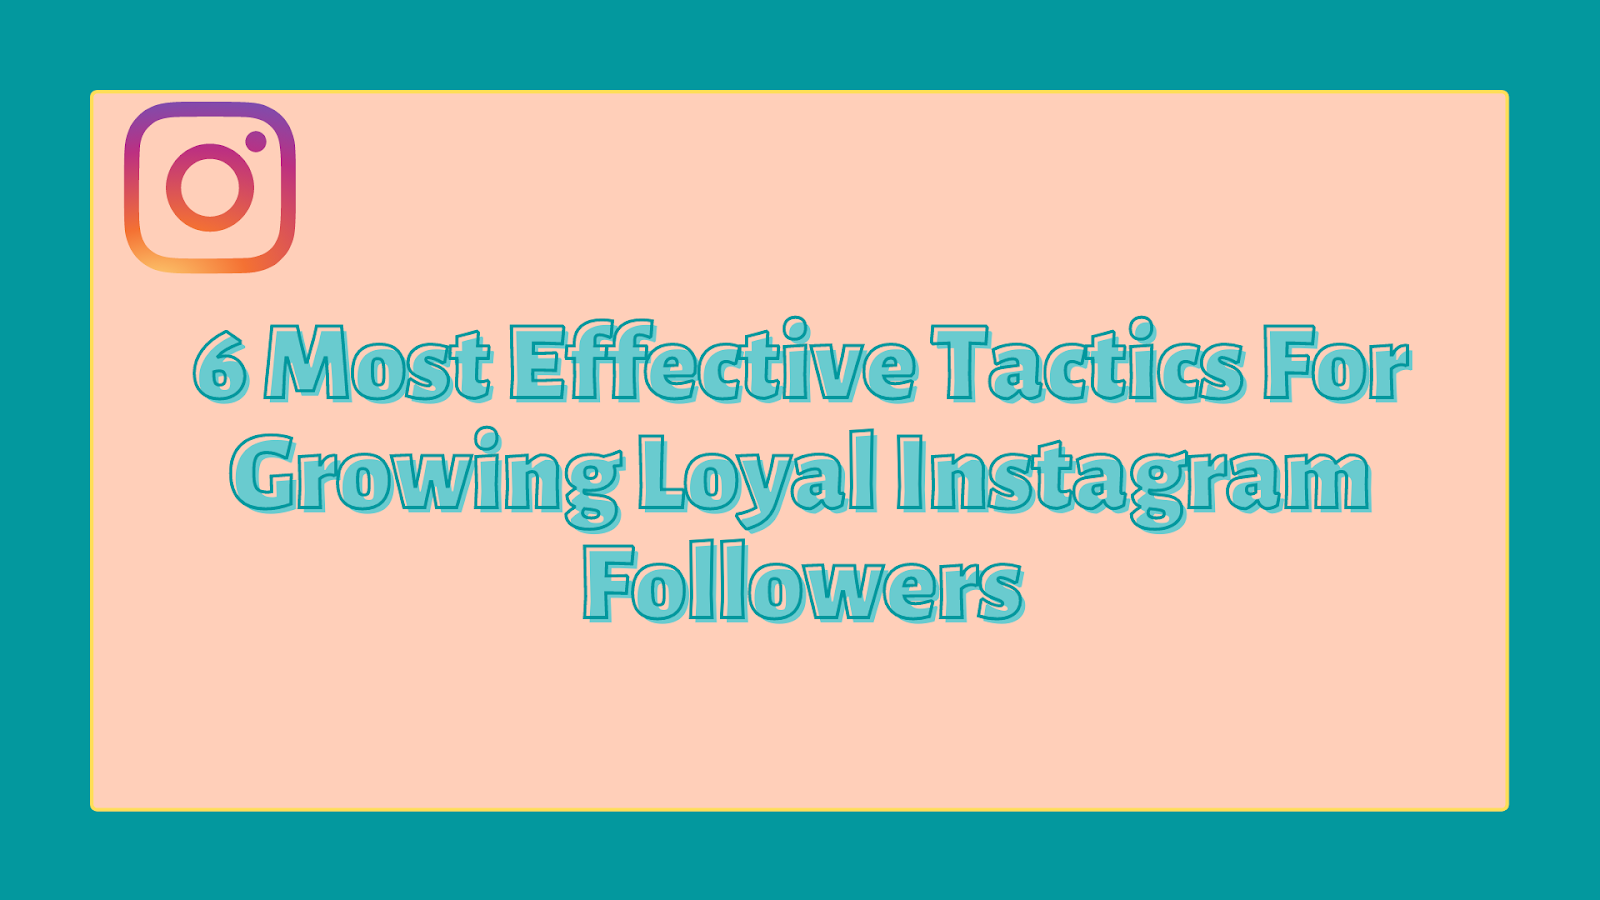 6 Most Effective Tactics For Growing Loyal Instagram Followers